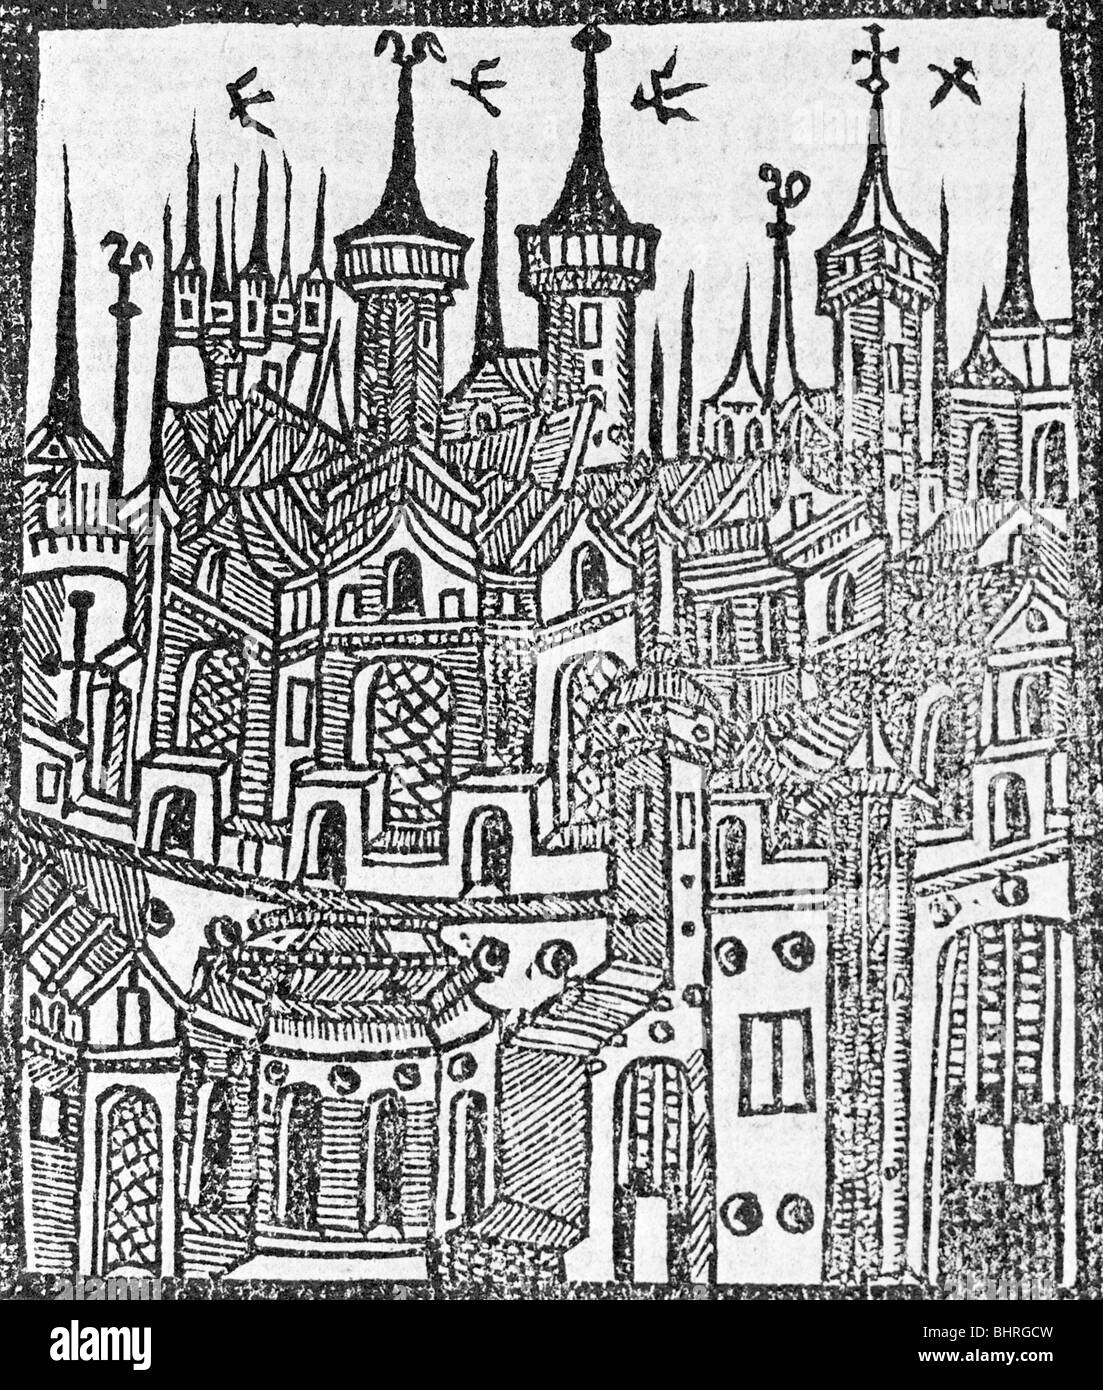 Woodcut from The Chronicle of Englonde, 1497. Artist: Wynkyn de Worde - Stock Image